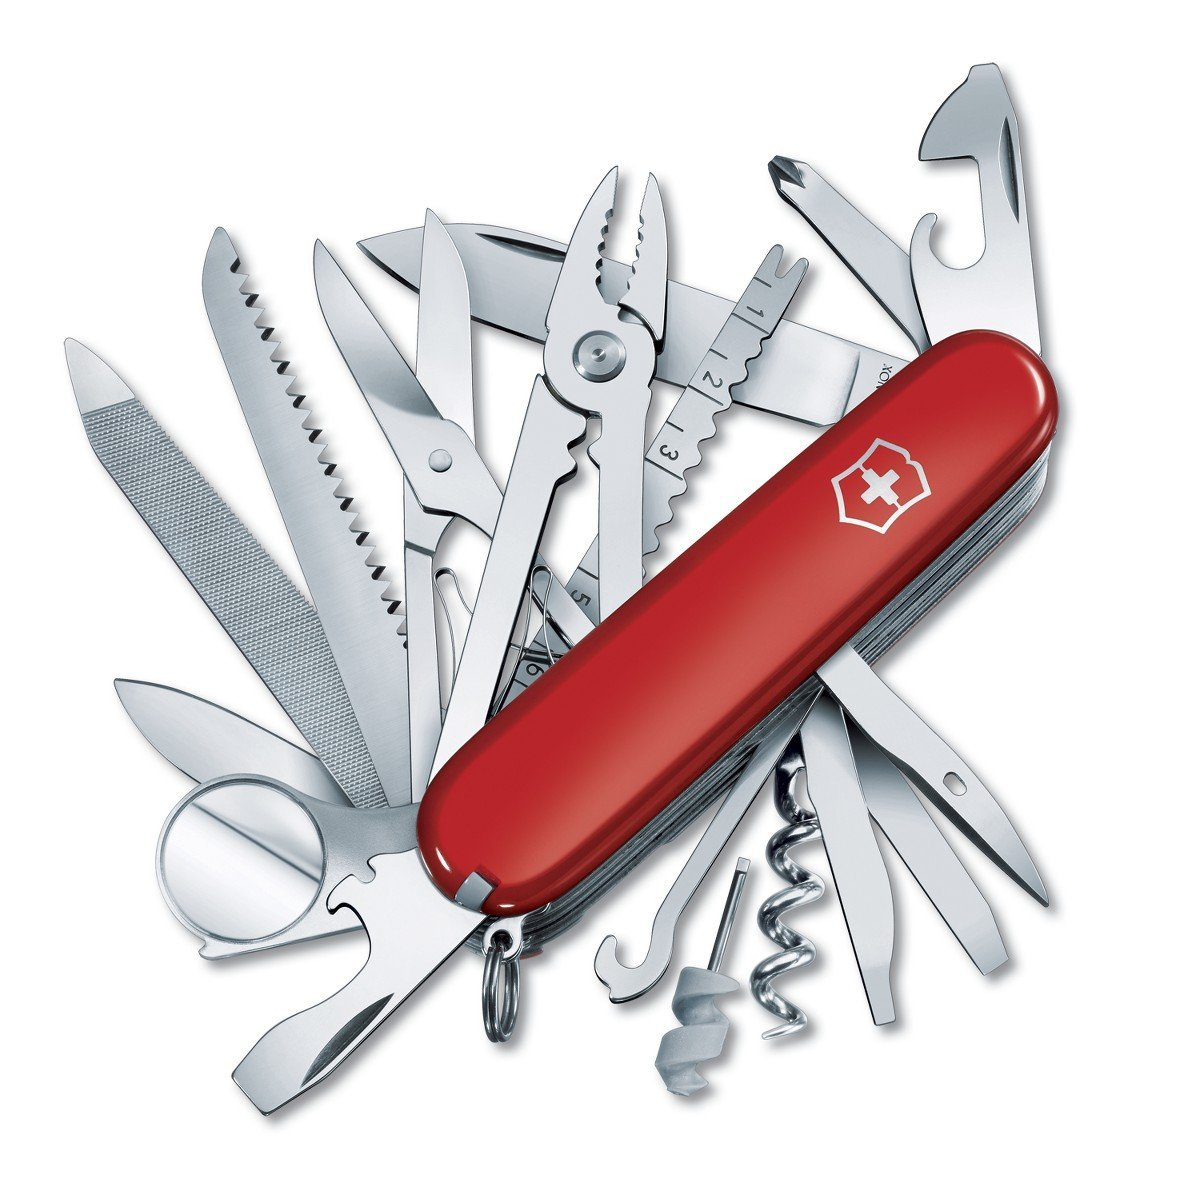 9 Best Swiss Army Knife Reviews Buyer Guide Updated